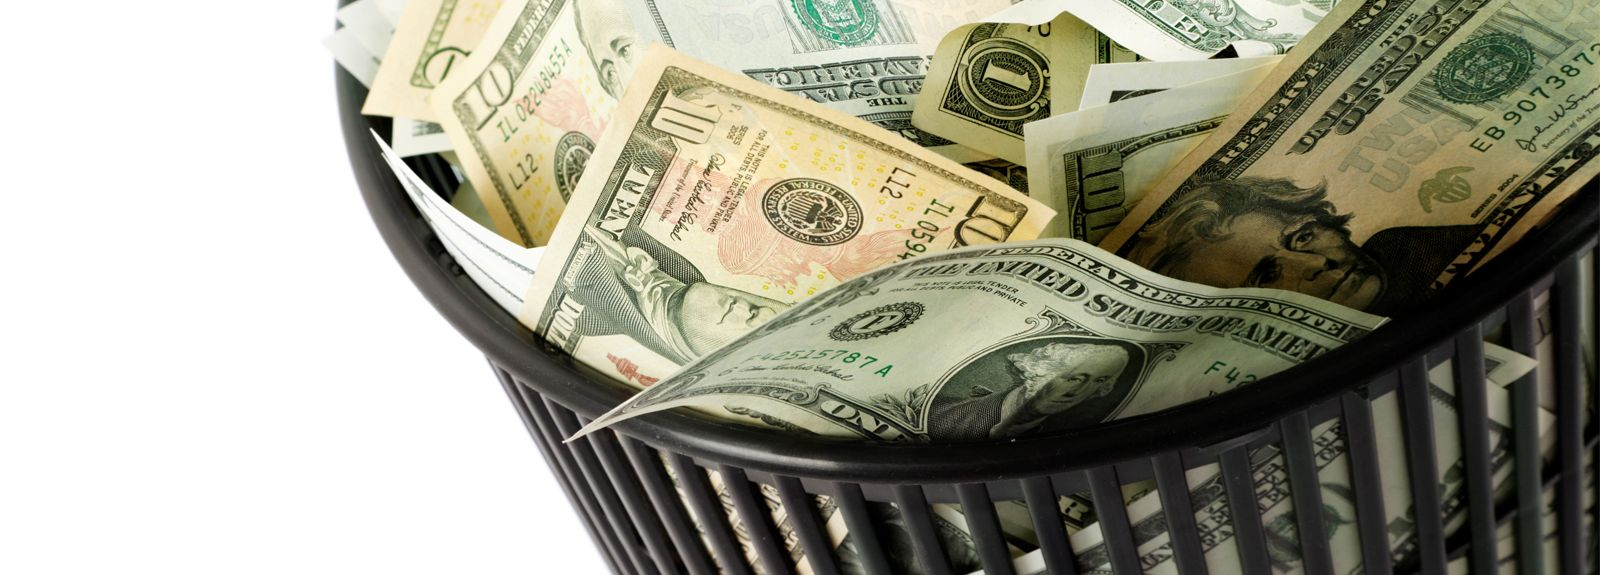 Stop throwing reimbursement dollars away! image